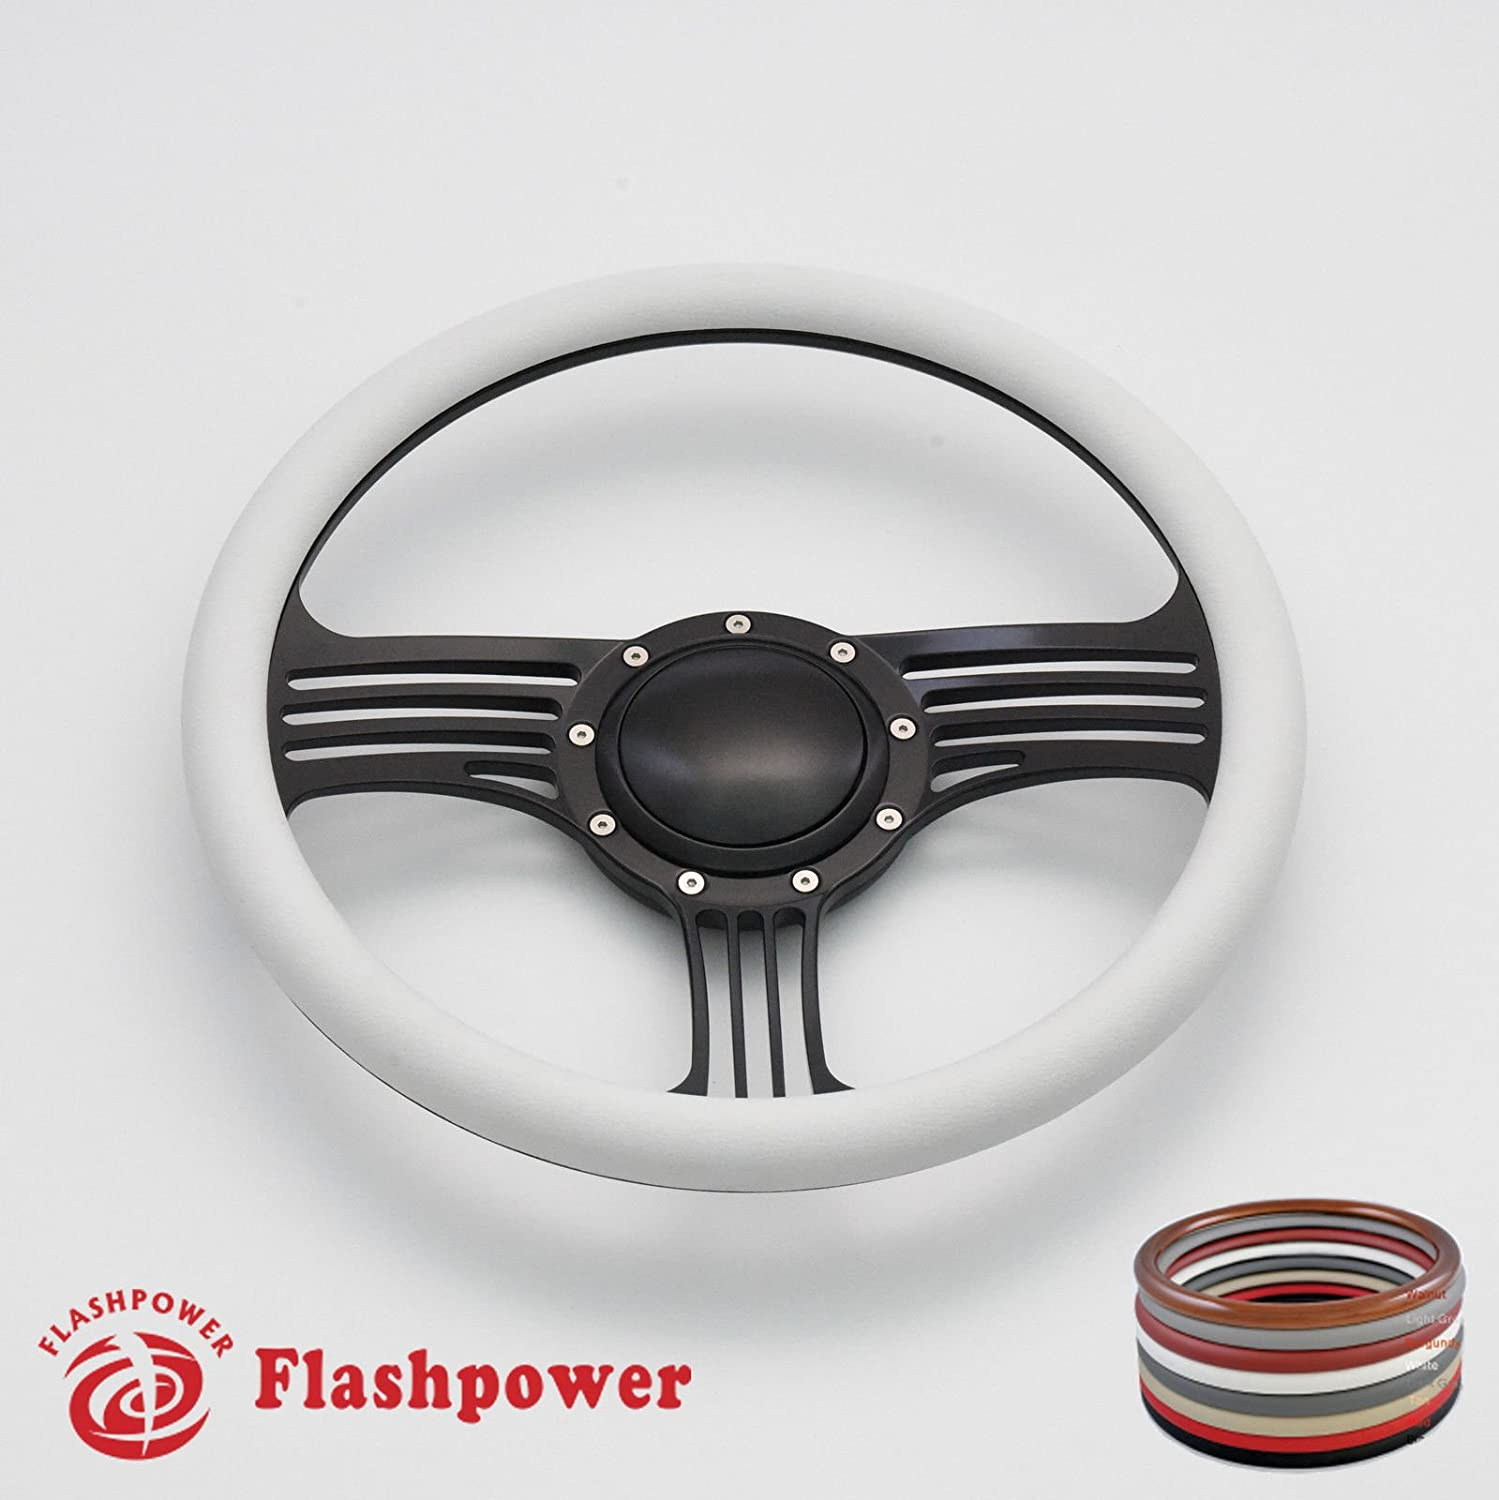 Flashpower 14 Billet Half Wrap 9 Bolts Steering Wheel with 2 Dish and Horn Button Black